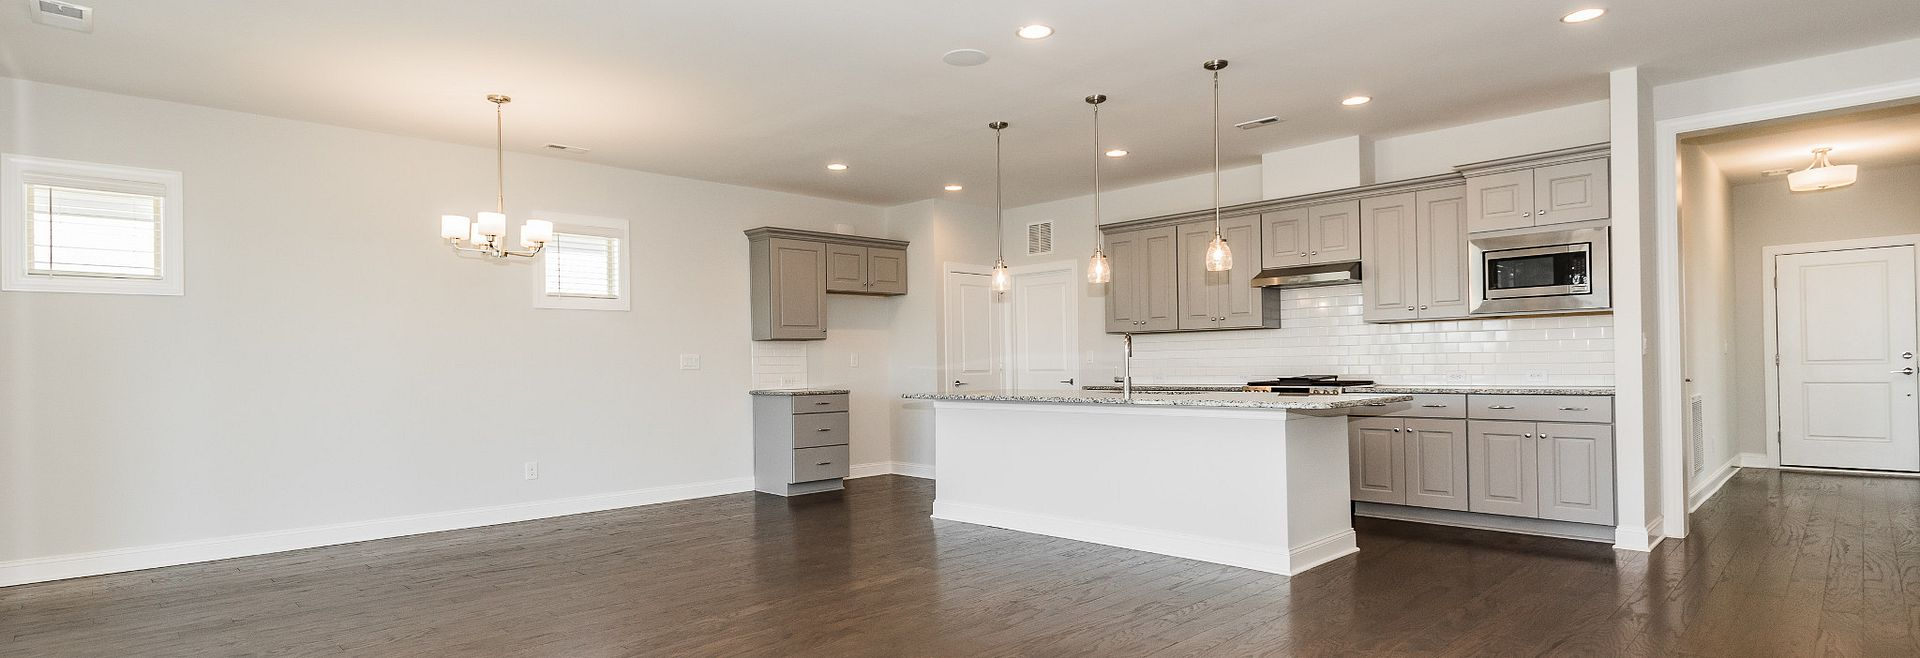 Trilogy Lake Norman Quick Move In Home Affirm Plan Kitchen